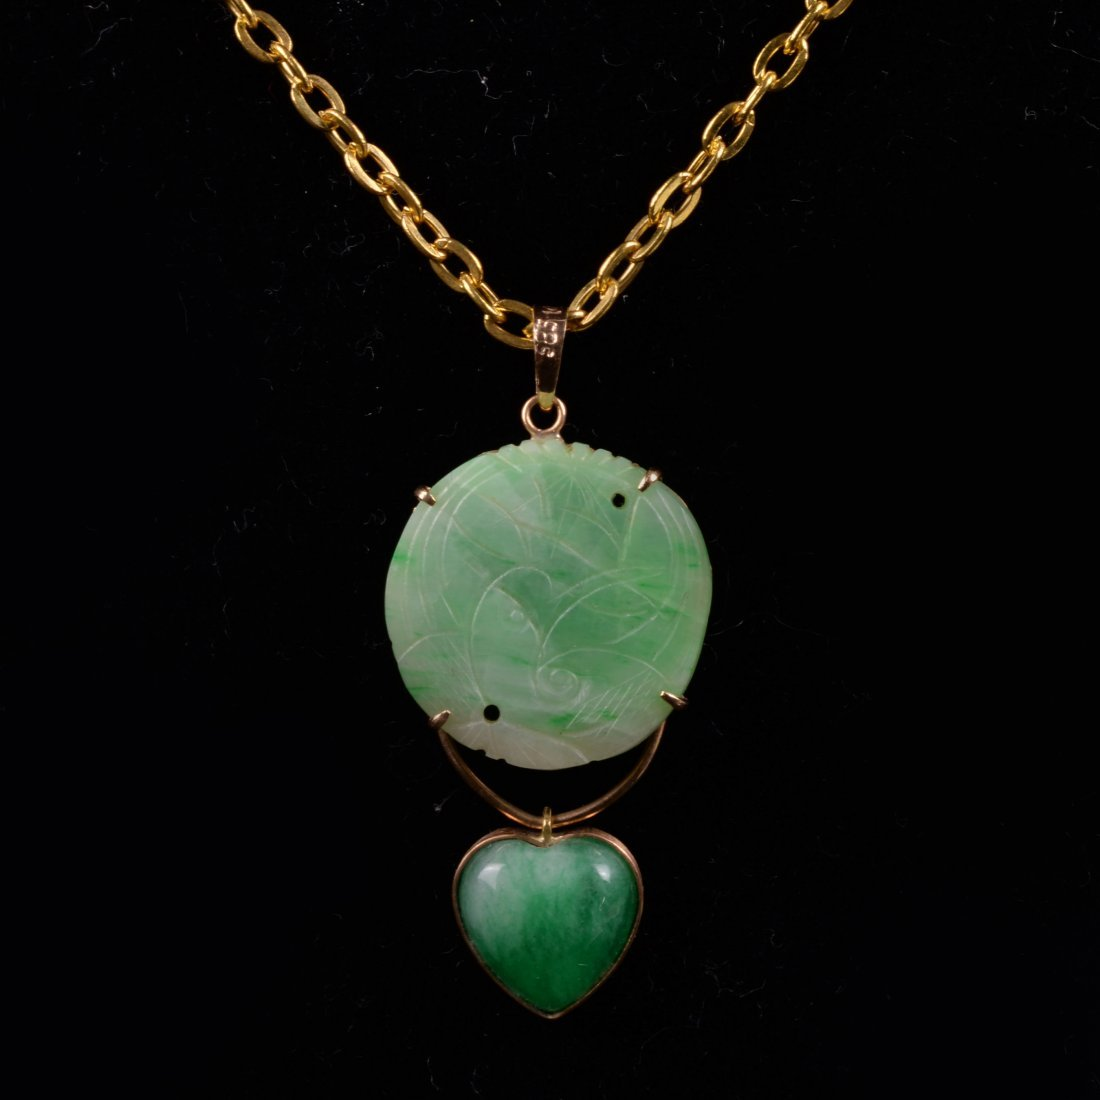 14K Chinese Jadeite Pendant with Chain